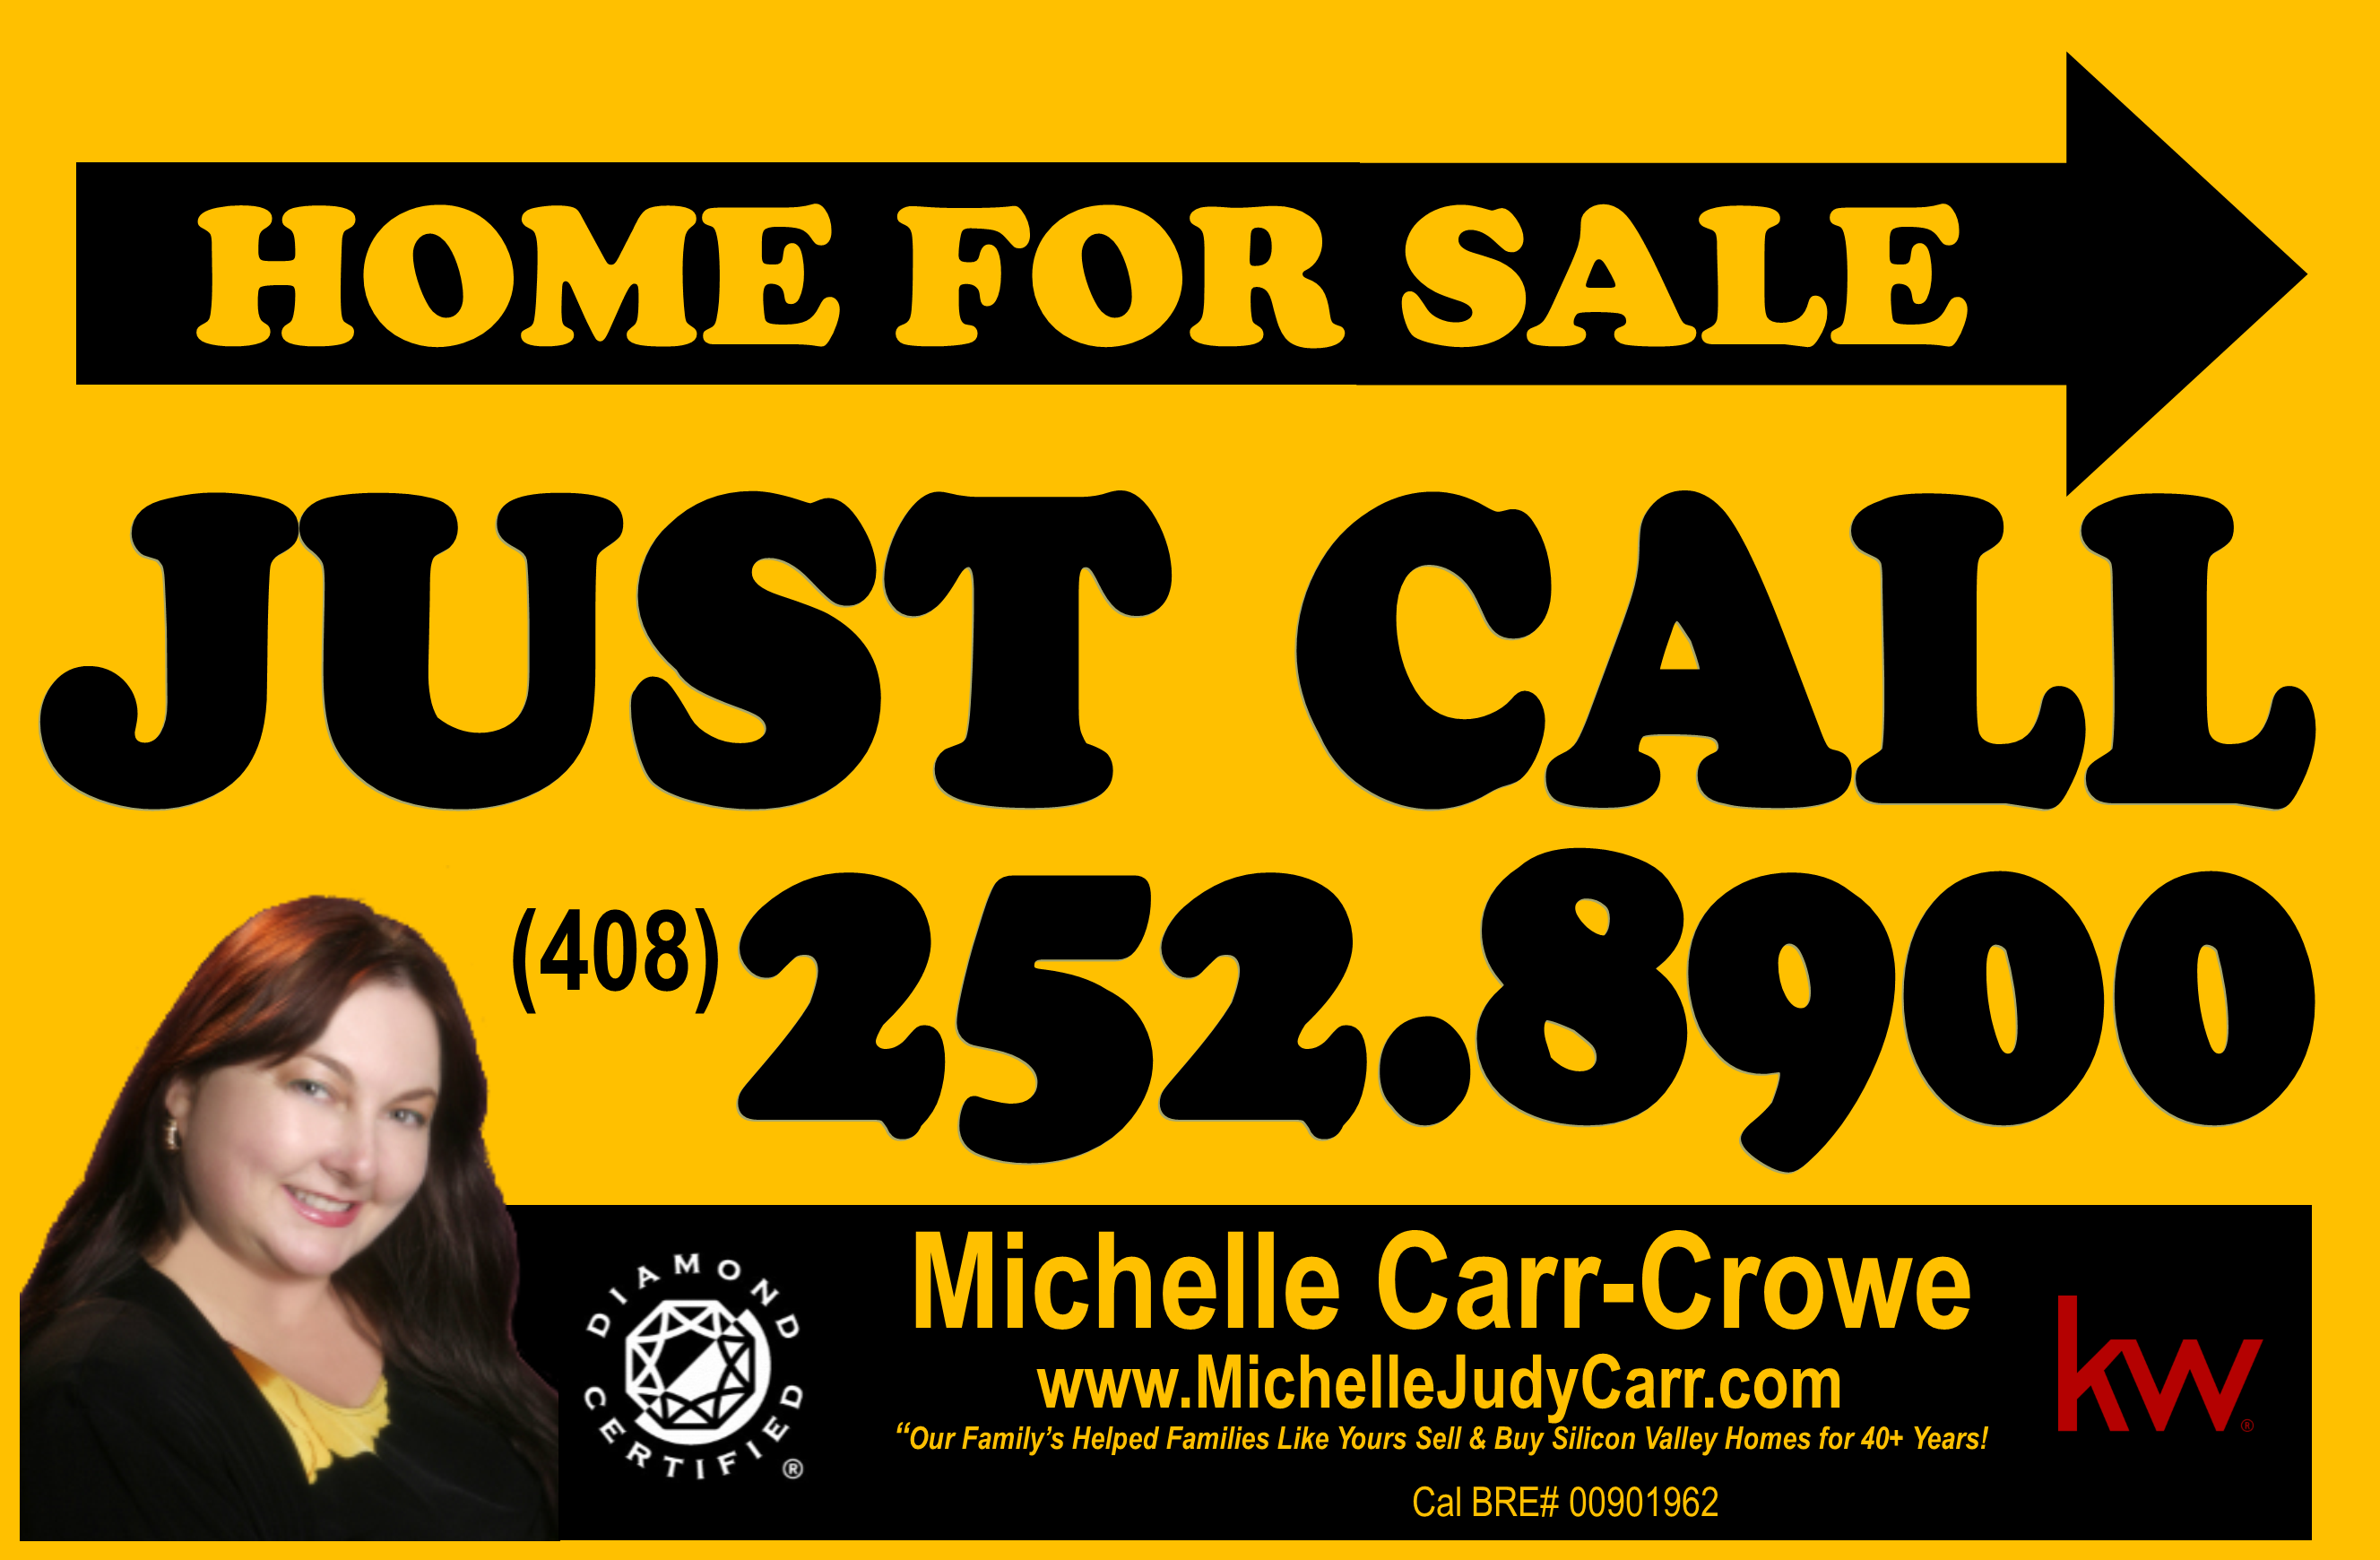 Michelle Carr Crowe real estate sign image